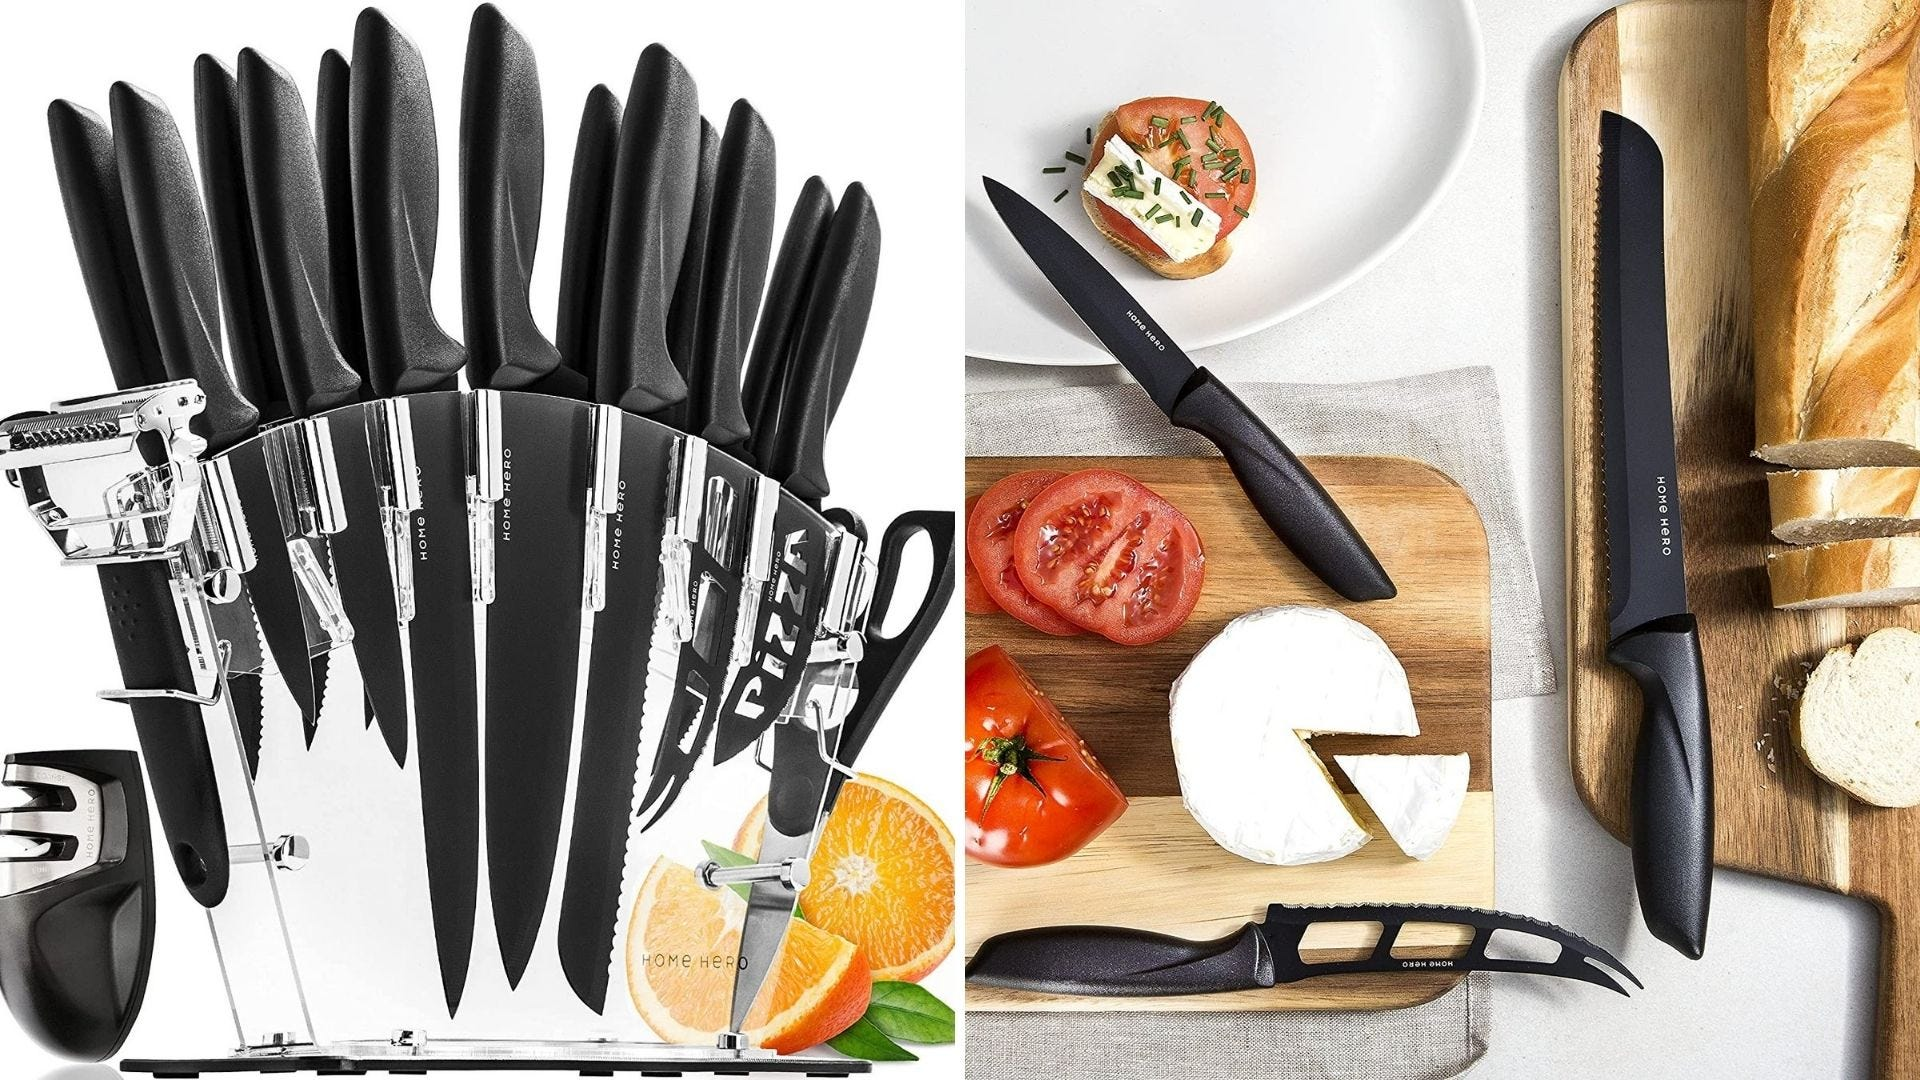 A Home Hero knife block set with some of the knives on a cutting board.